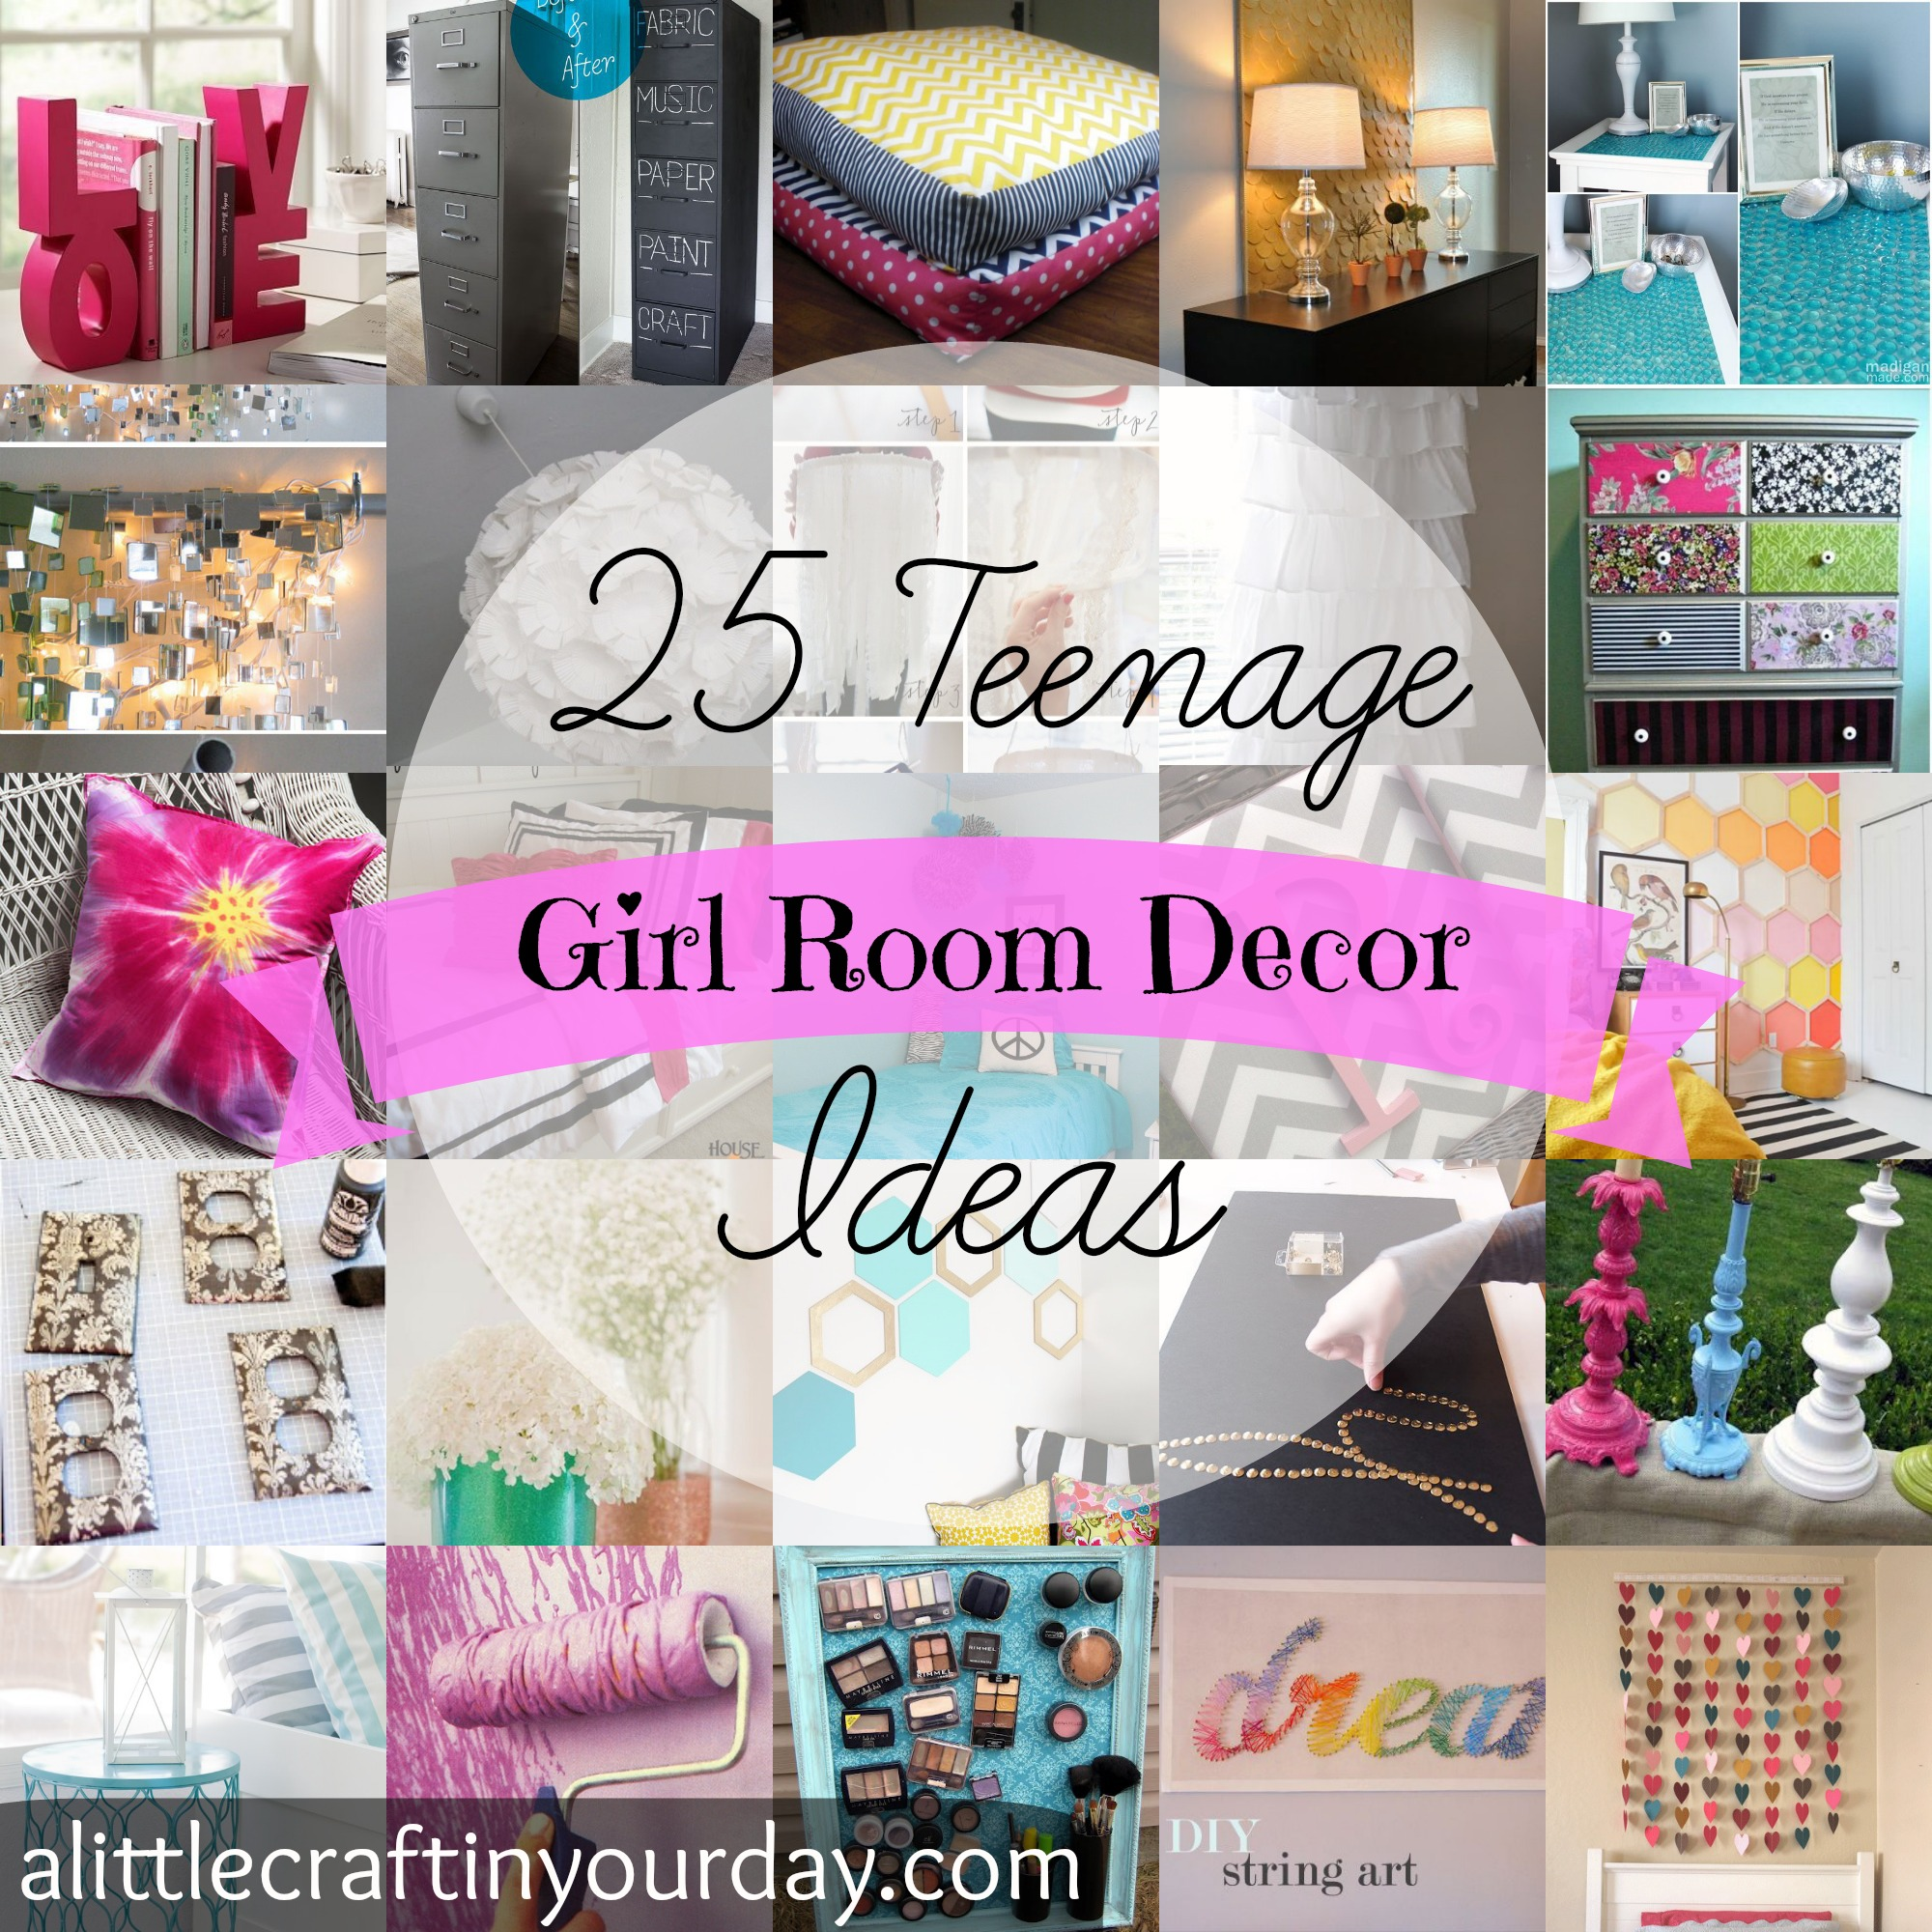 12 DIY Spring Room Decor Ideas - Craft Teen on Beautiful:9Ekmjwucuyu= Girls Room Decoration  id=64370